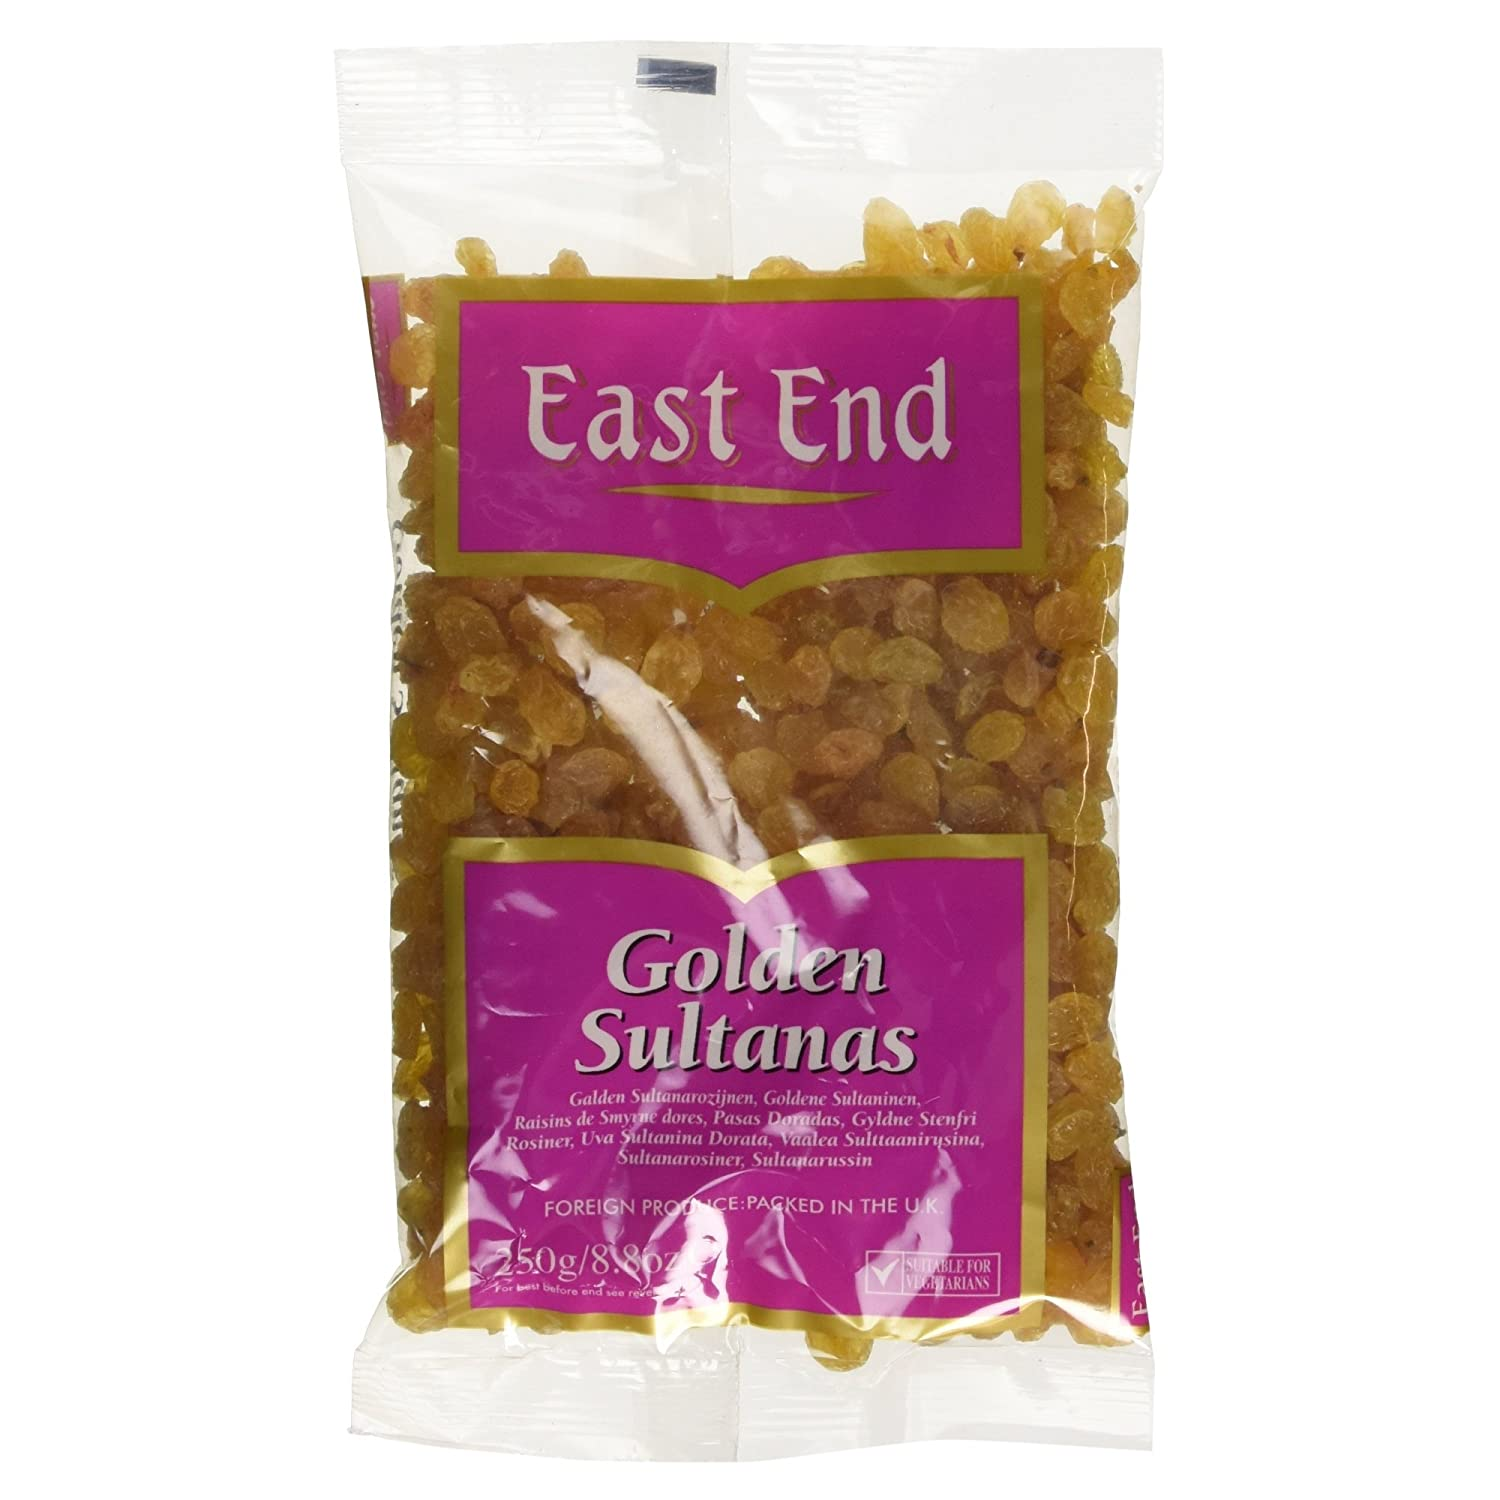 EastEnd Golden Sultanas